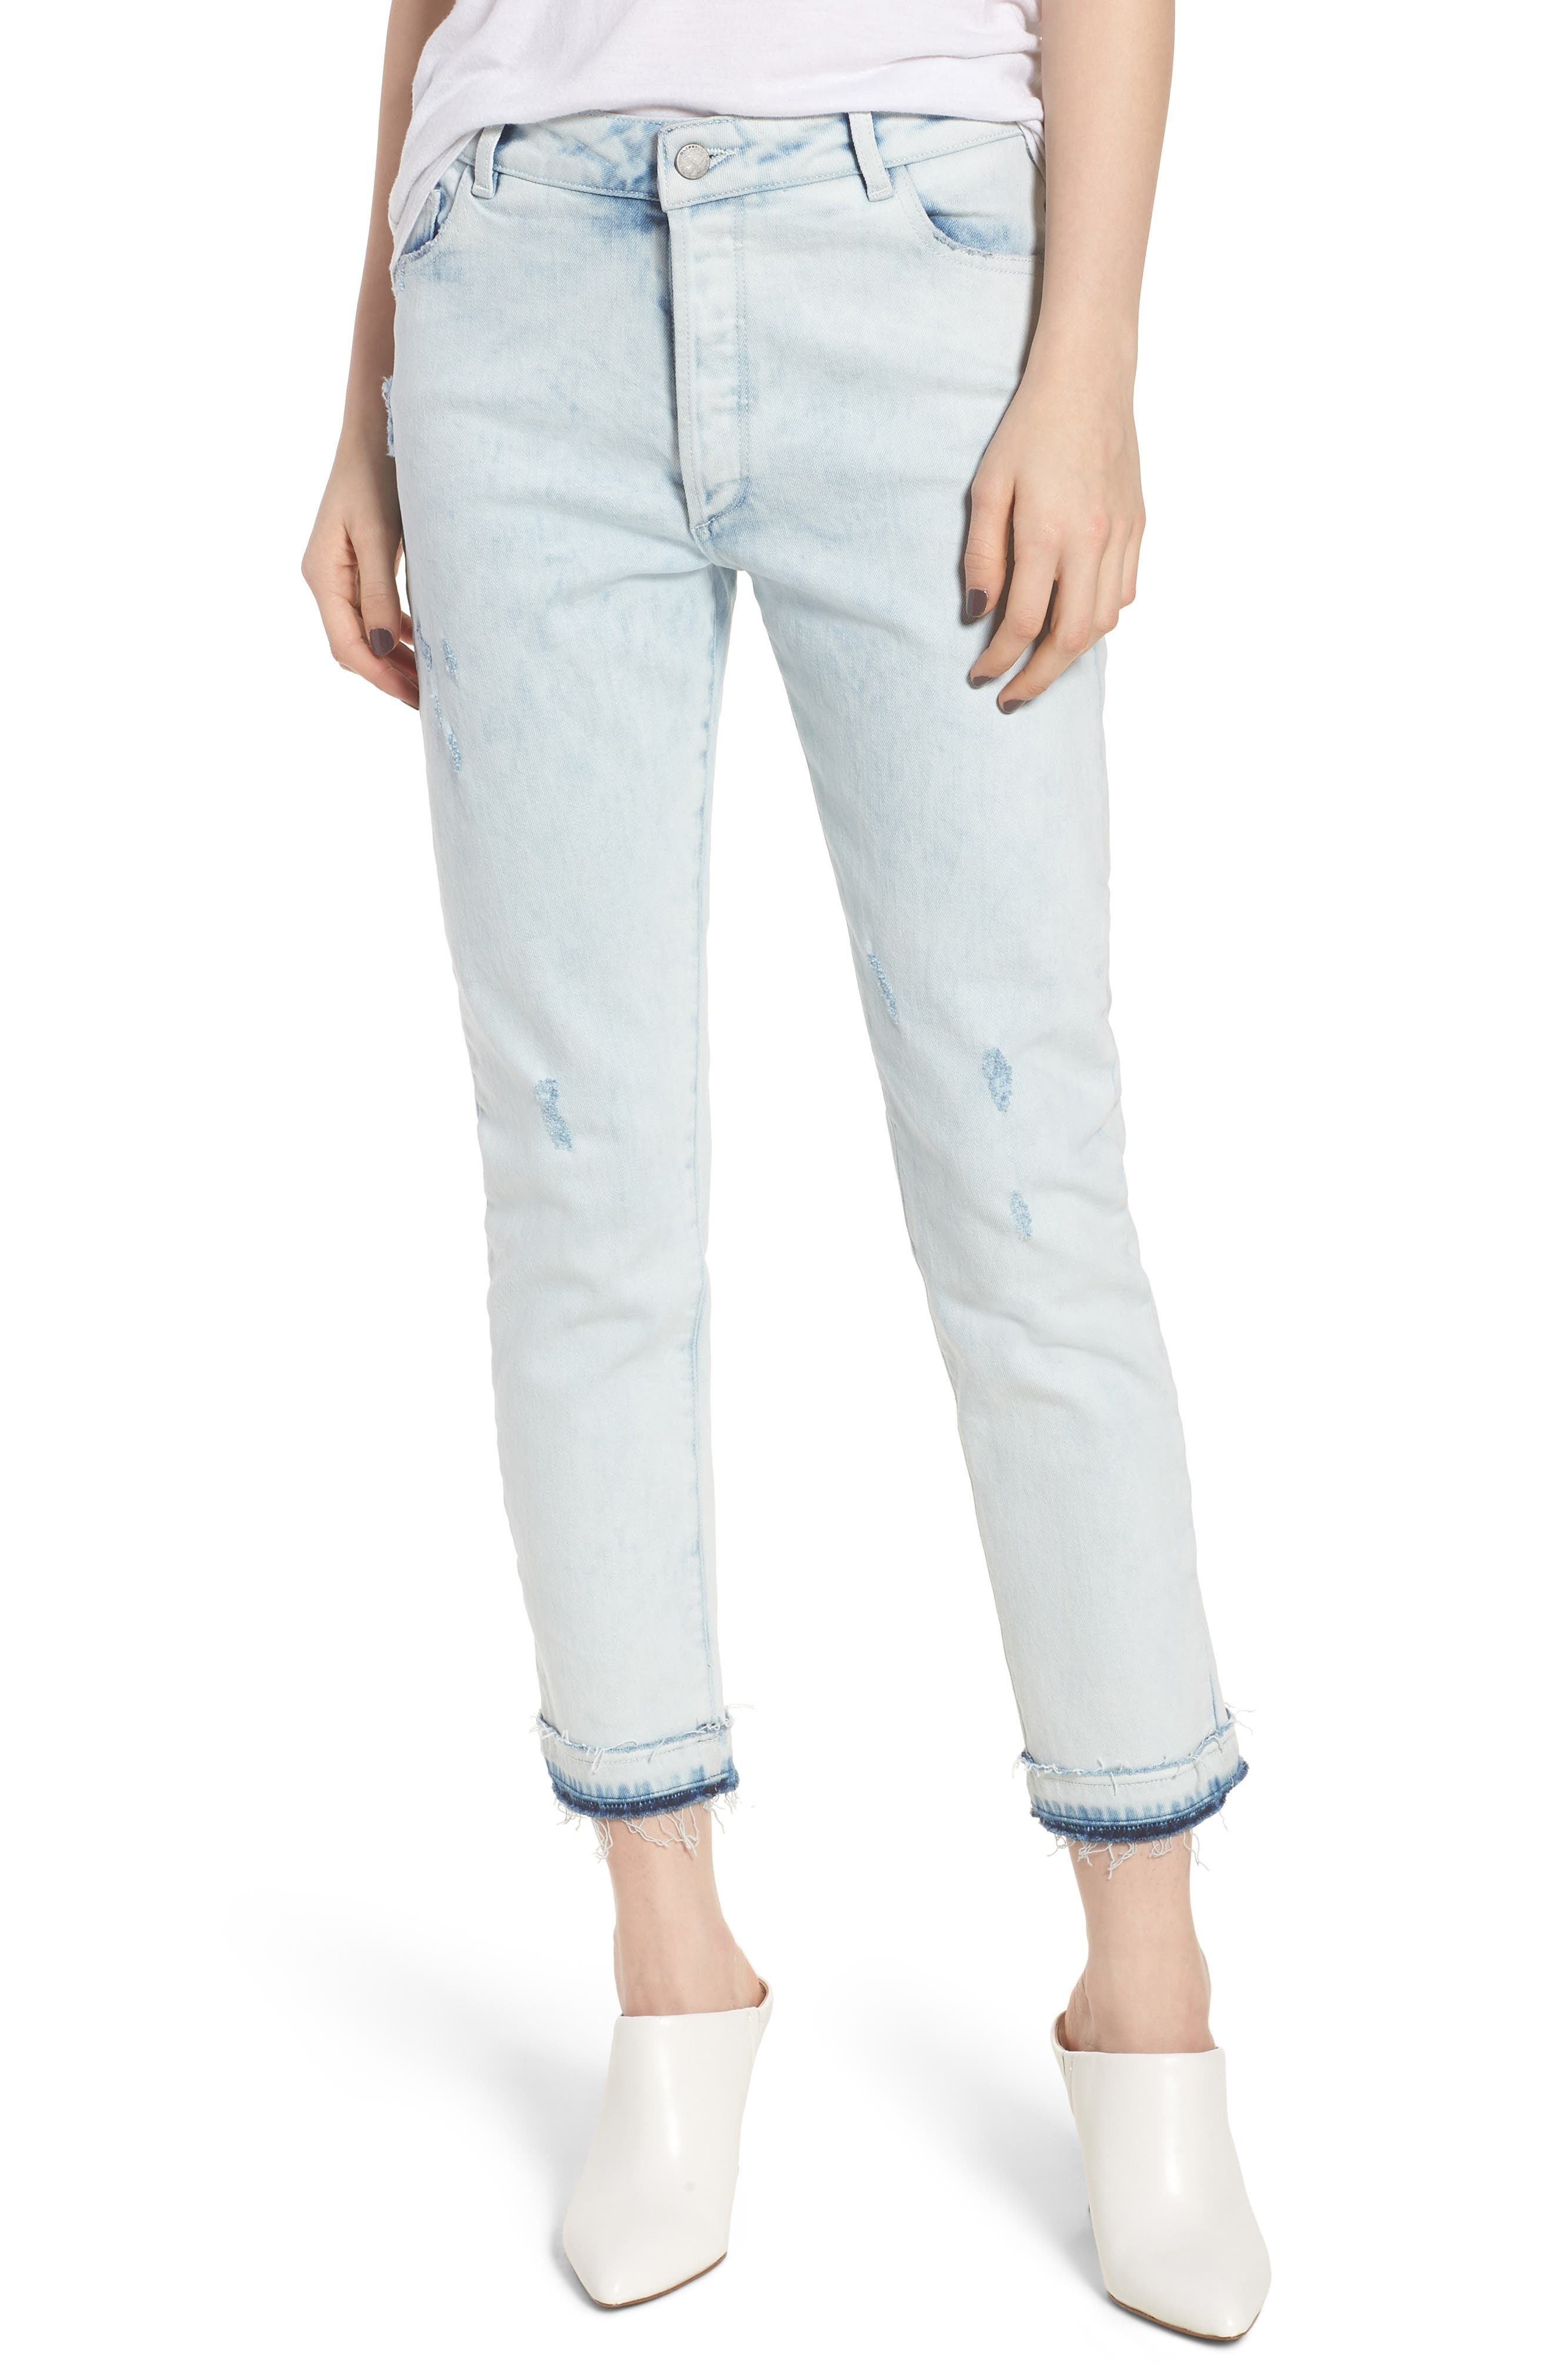 Bella Vintage Crop Slim Jeans,                         Main,                         color,